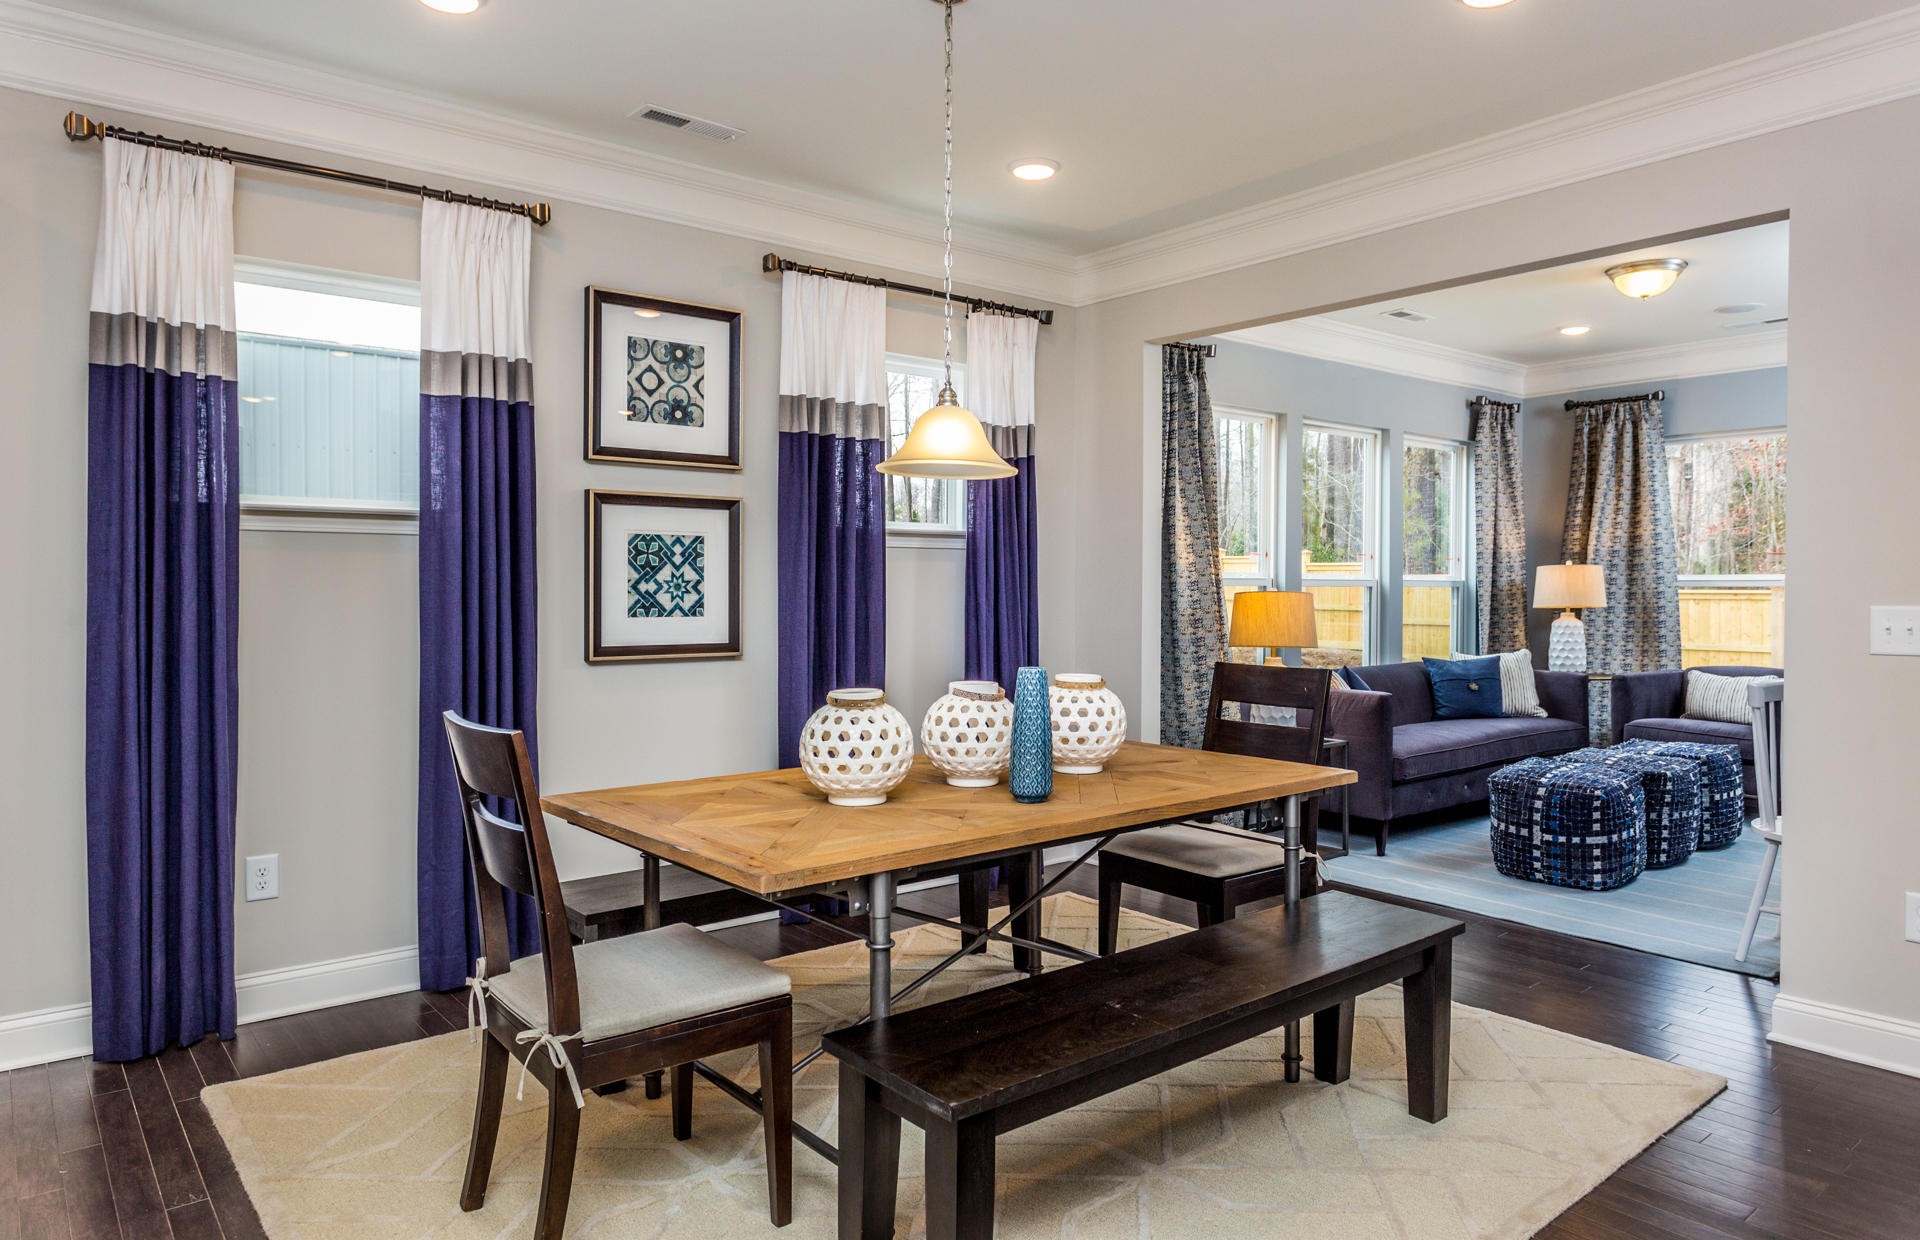 Oaks at Sears Farm by Pulte Homes image 1